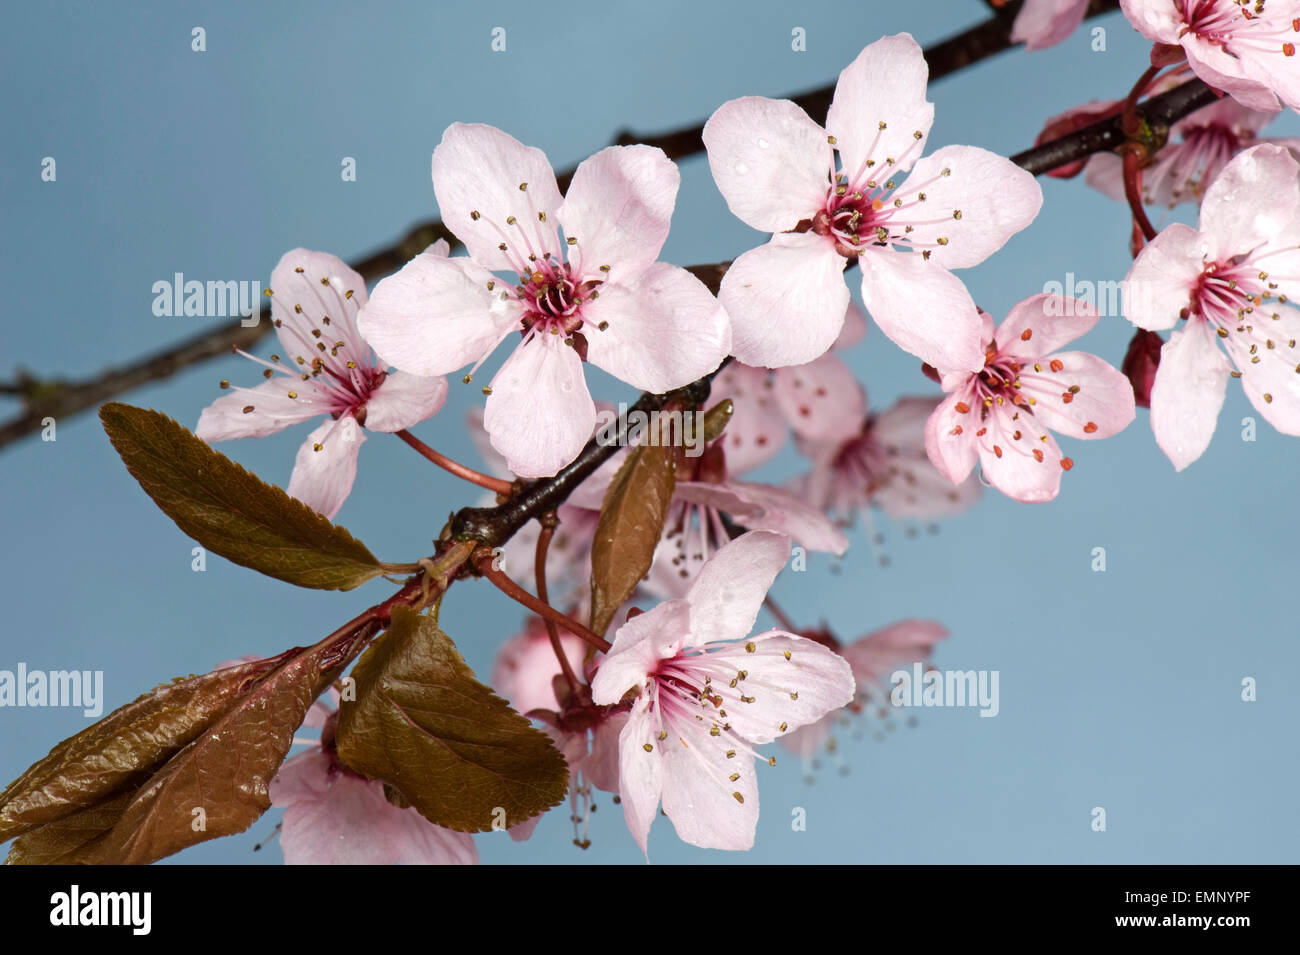 Pink Flowers On A Cherry Plum Tree Prunus Cerasifera Pissaardii